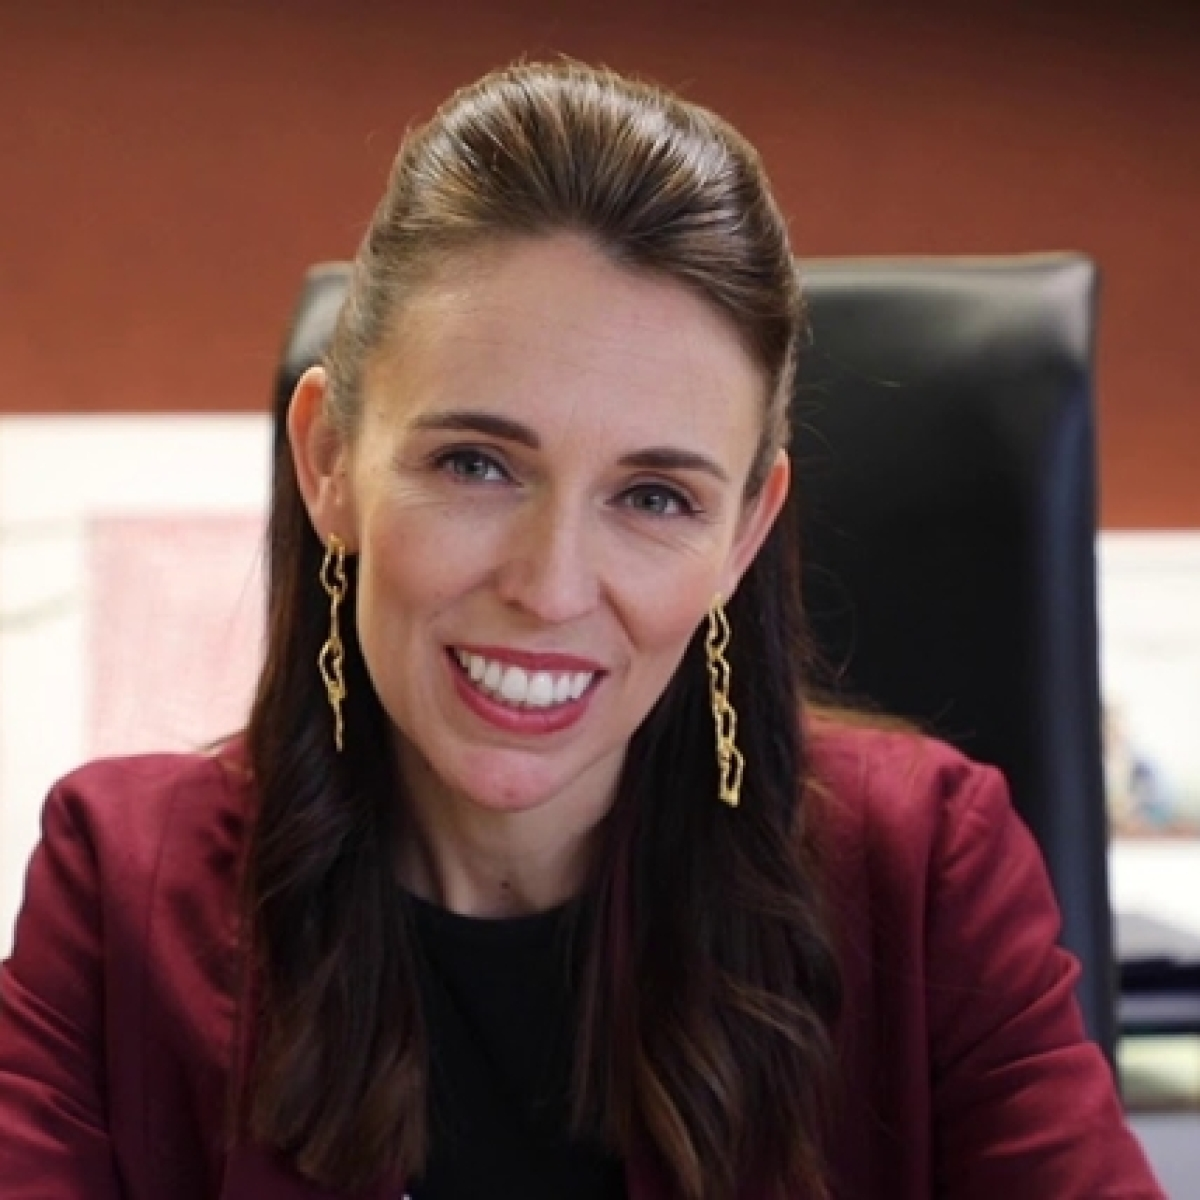 Here's why it's wrong to compare New Zealand Prime Minister Jacinda Ardern with other global leaders